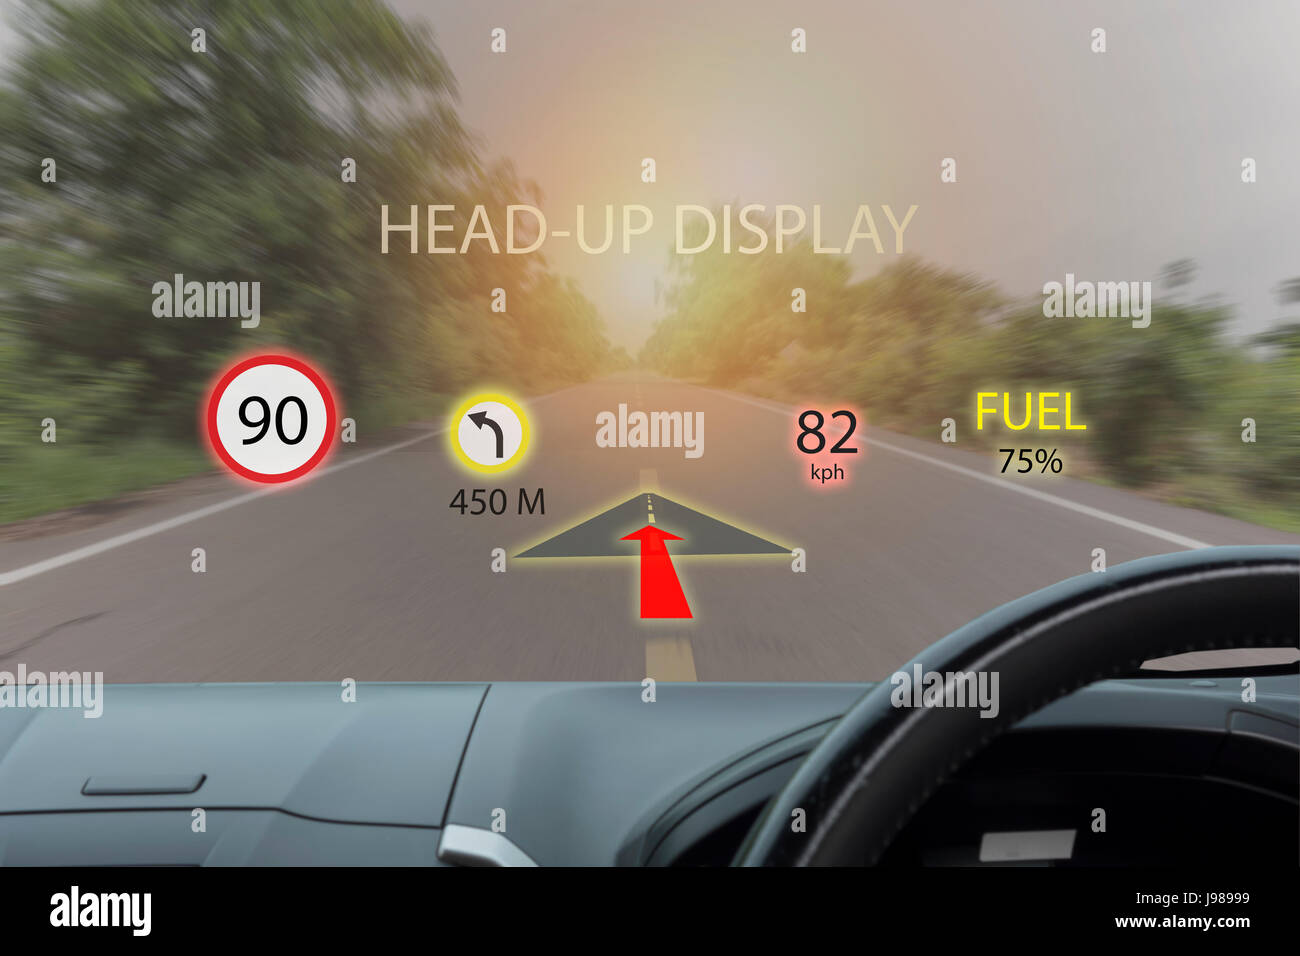 iot, internet of things smart car concepts, Head up display (HUD). Car use augmented reality to show the speed, - Stock Image